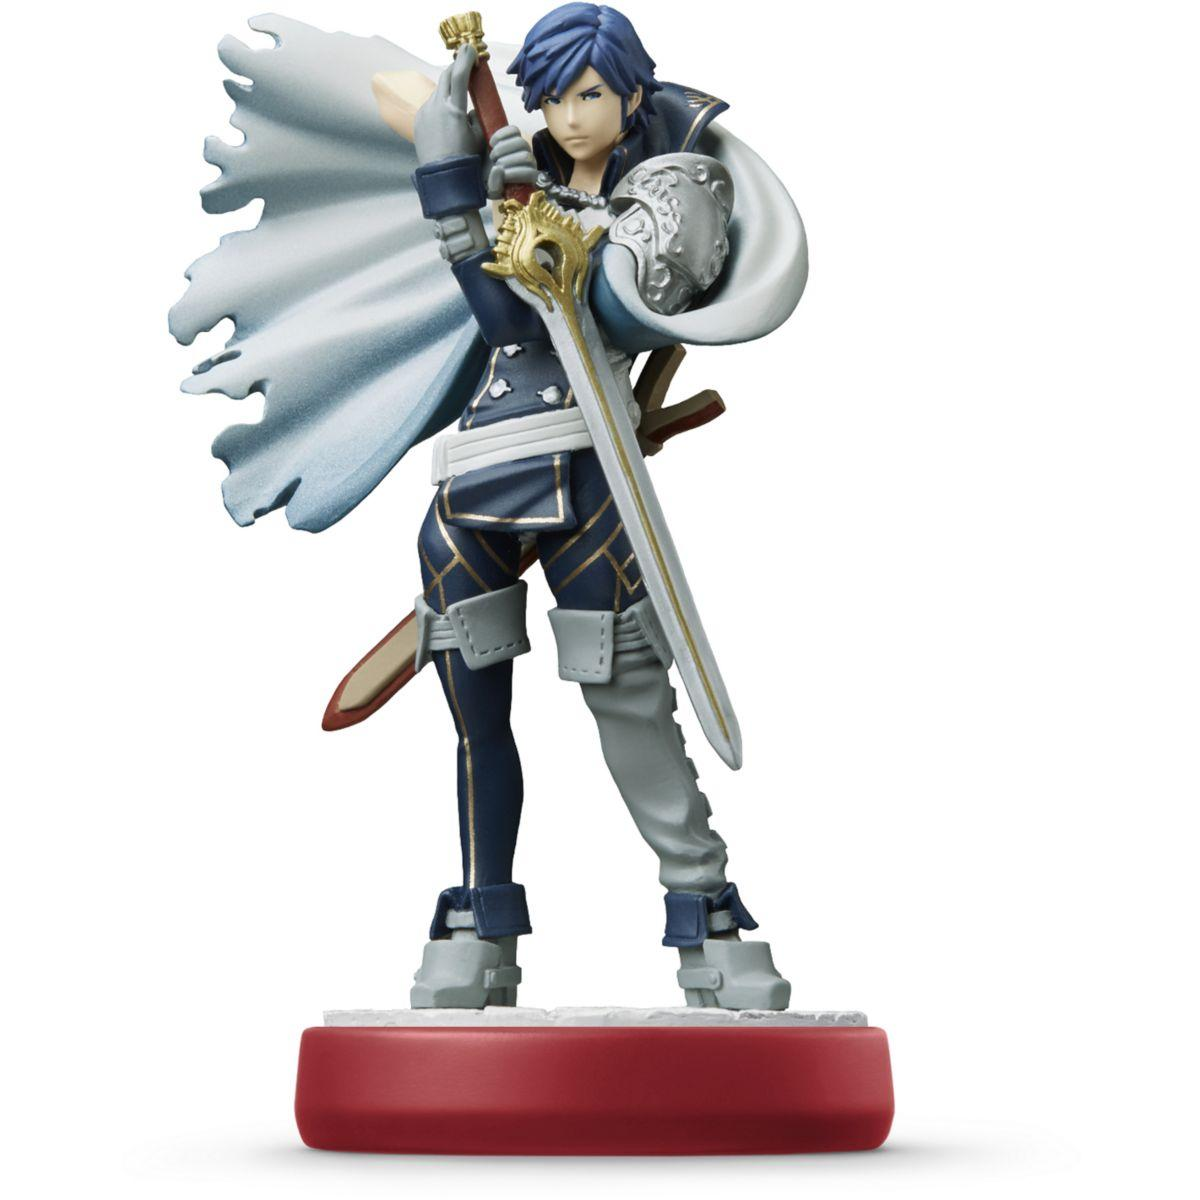 Figurine nintendo amiibo chrom (photo)